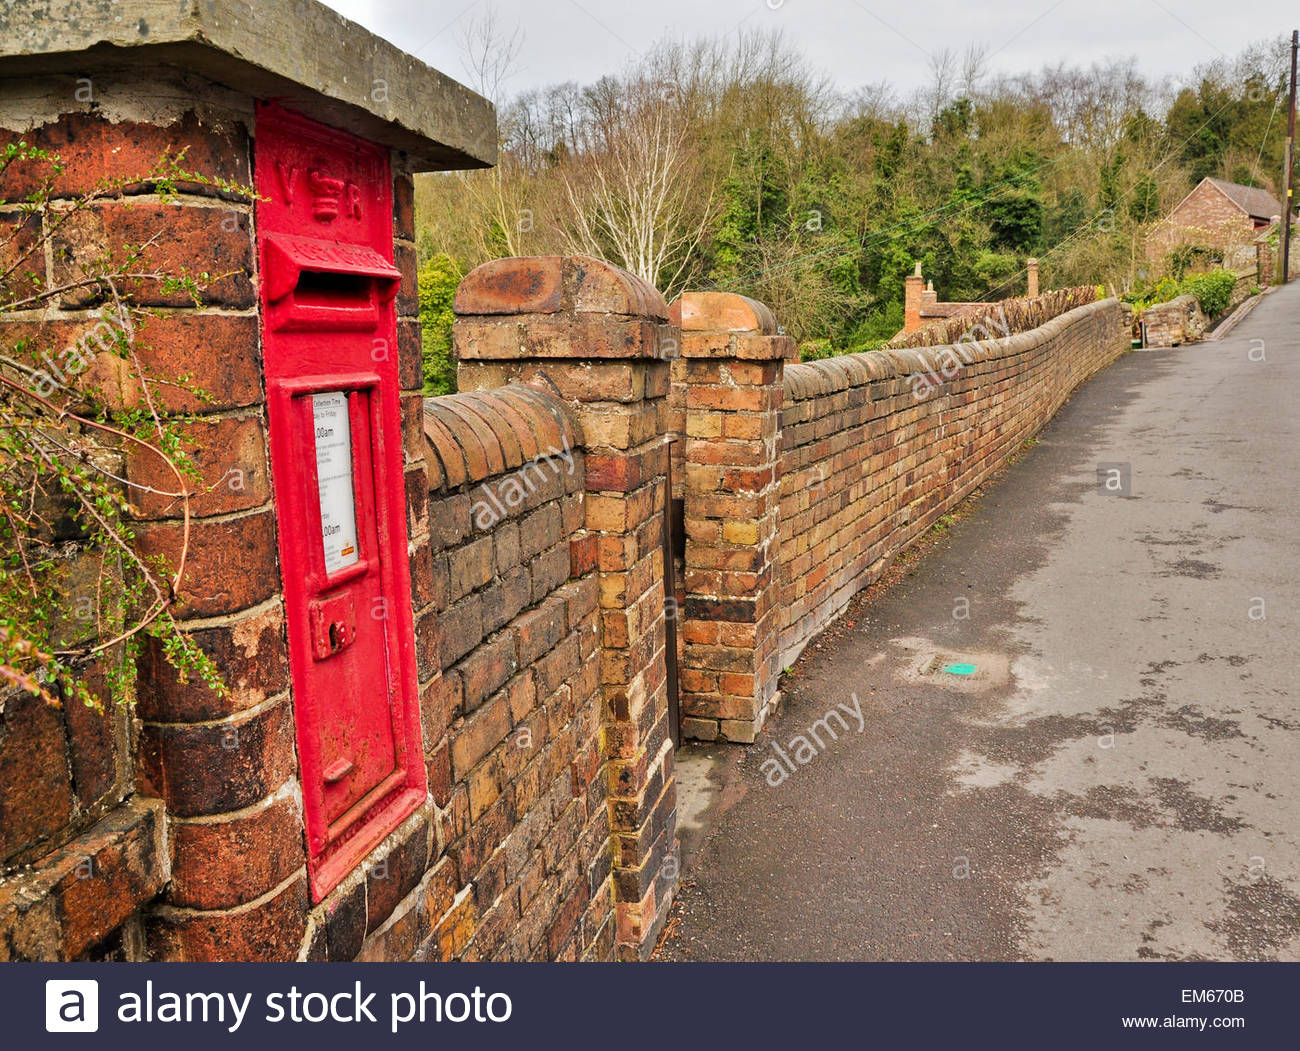 A red post box in a brick wall on a country lane in Ironbridge, Shropshire, UK - Stock Image